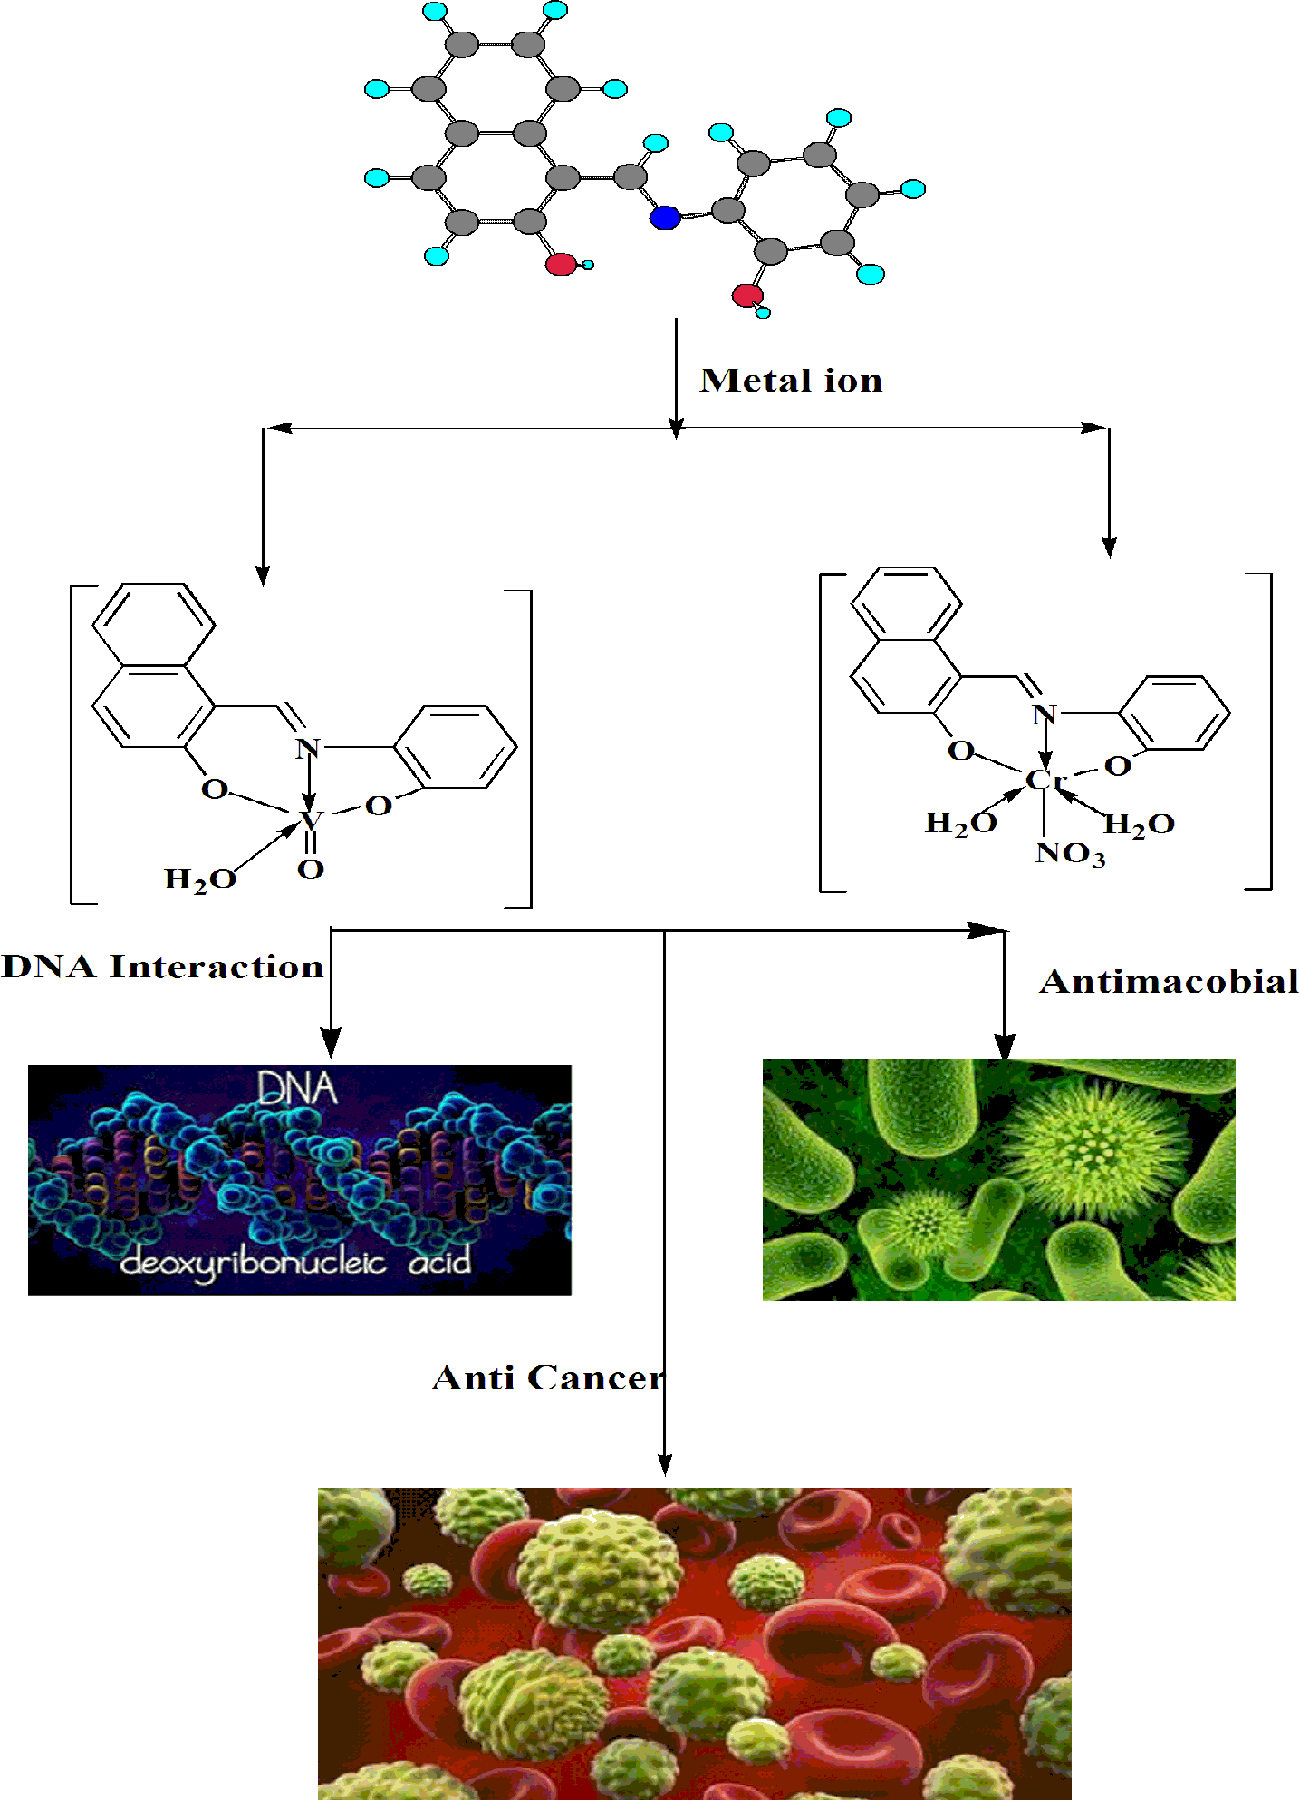 Three novel Ni(II), VO(II) and Cr(III) mononuclear complexes: Synthesis, structural characterization, DNA interaction, antimicrobial evaluation and anticancer activity